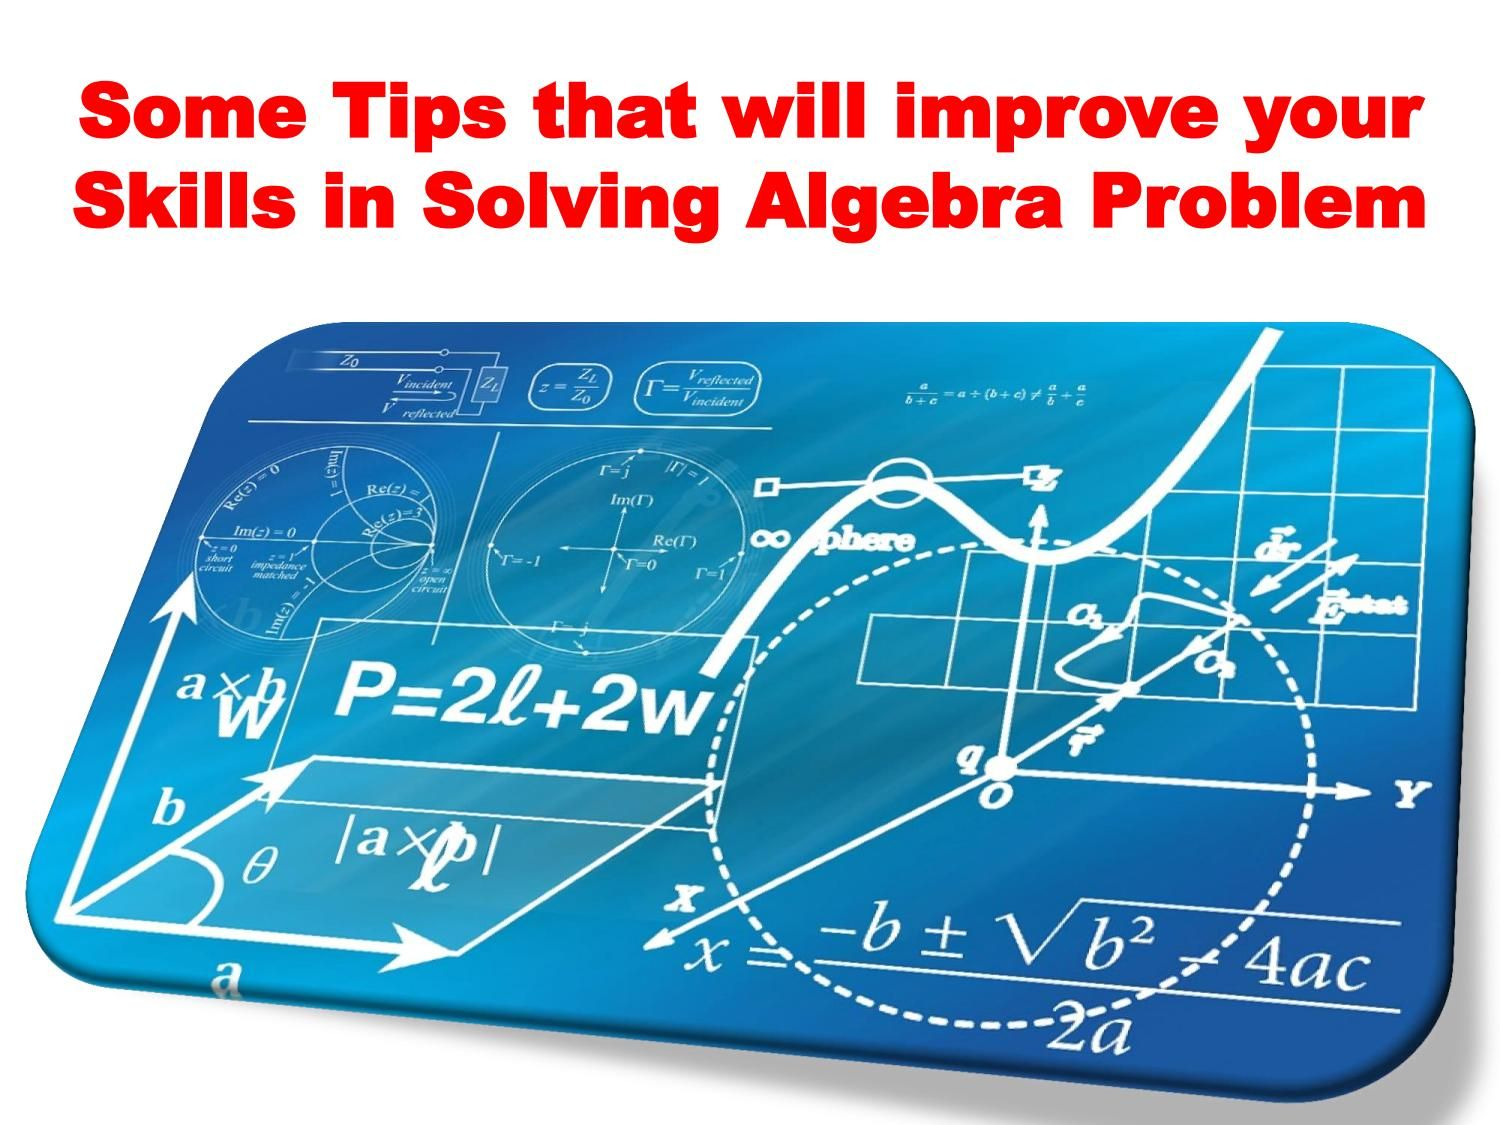 Some Tips that will improve your Skills in Solving Algebra Problem ...